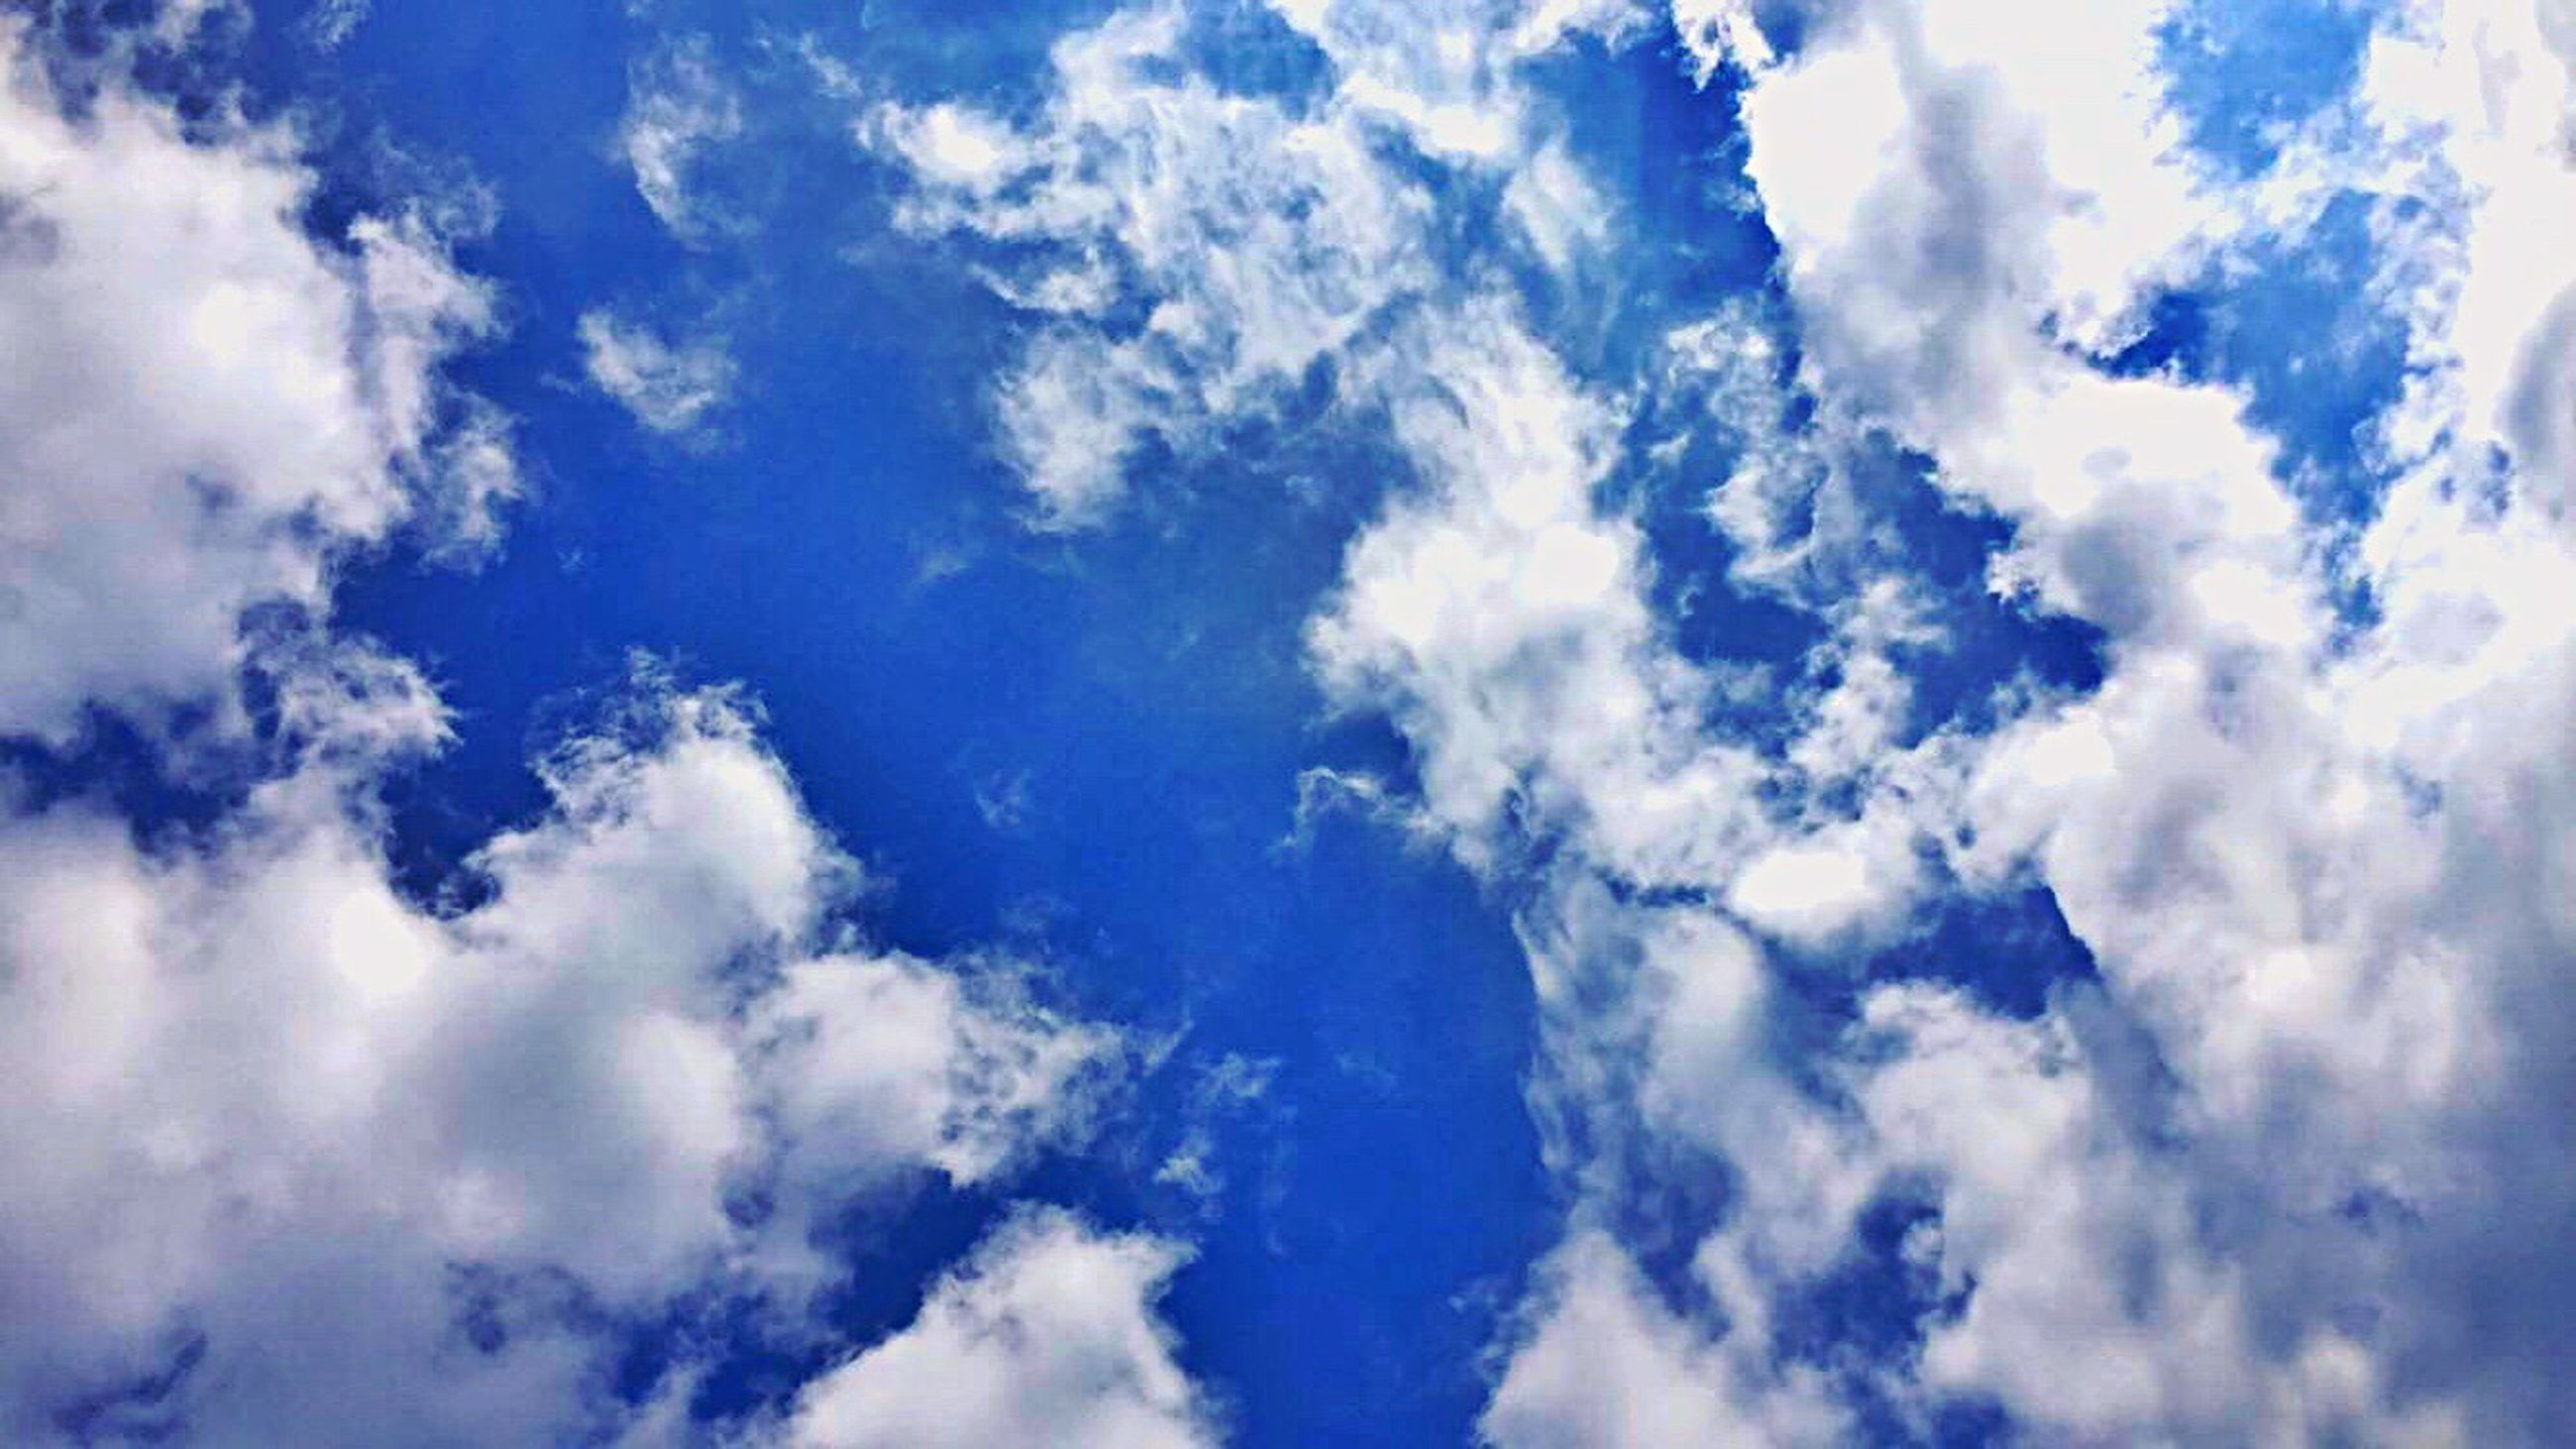 low angle view, blue, scenics, beauty in nature, tranquility, tranquil scene, sky, cloud - sky, nature, white, cloud, backgrounds, majestic, white color, day, sky only, idyllic, heaven, outdoors, full frame, cloudscape, meteorology, cloudy, fluffy, cumulus cloud, dreamlike